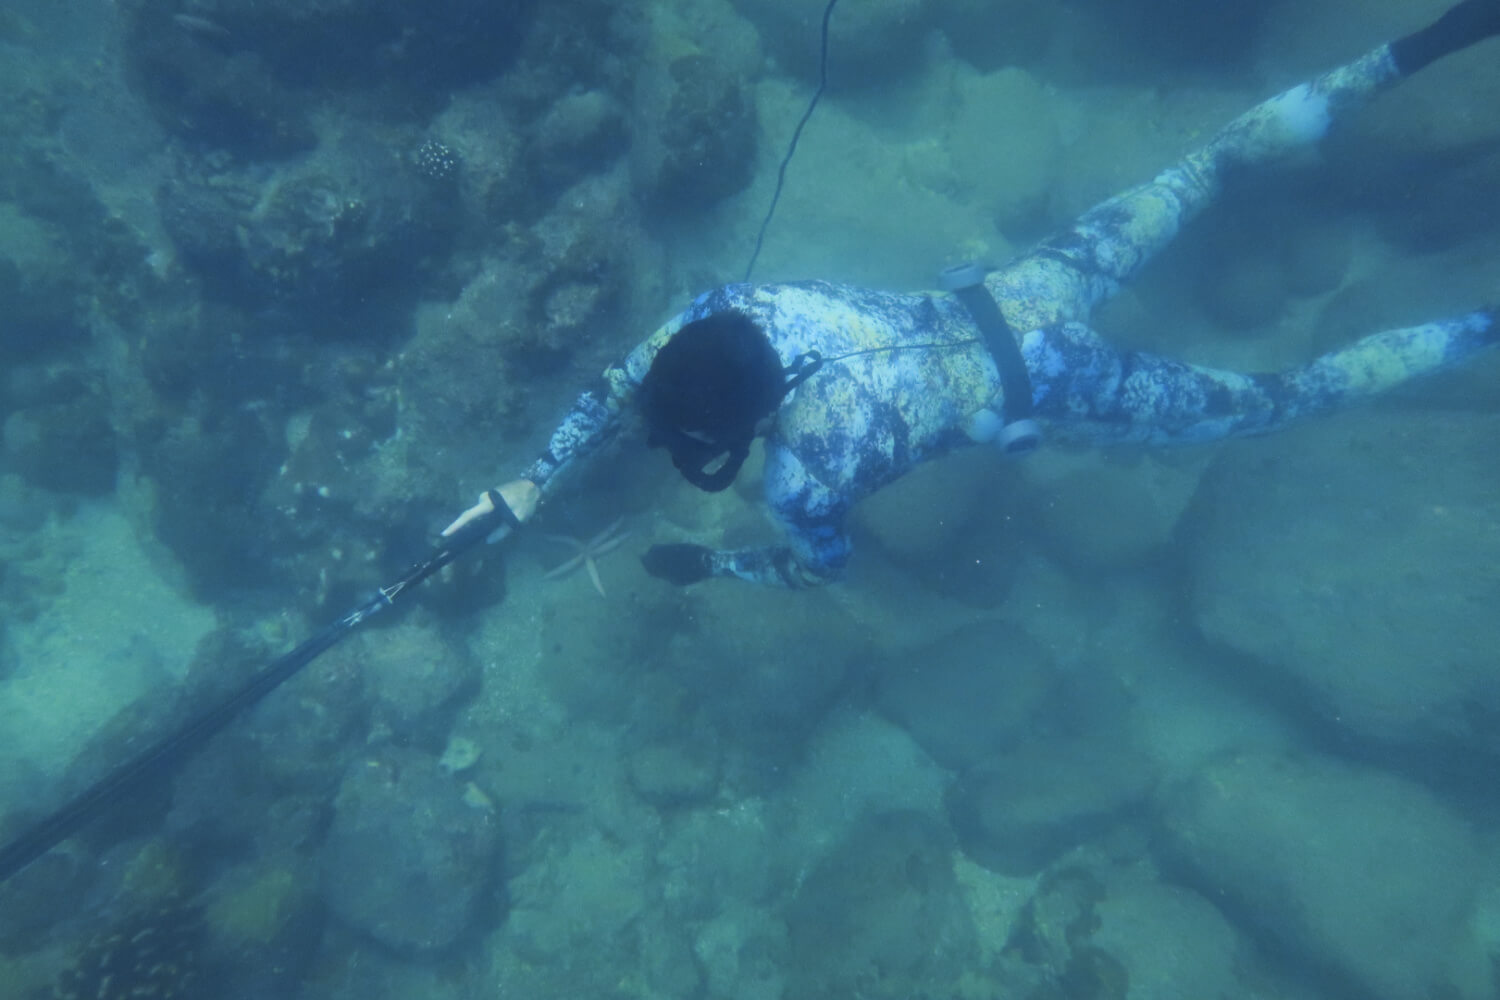 Spearfishing with a float line vs reel gun